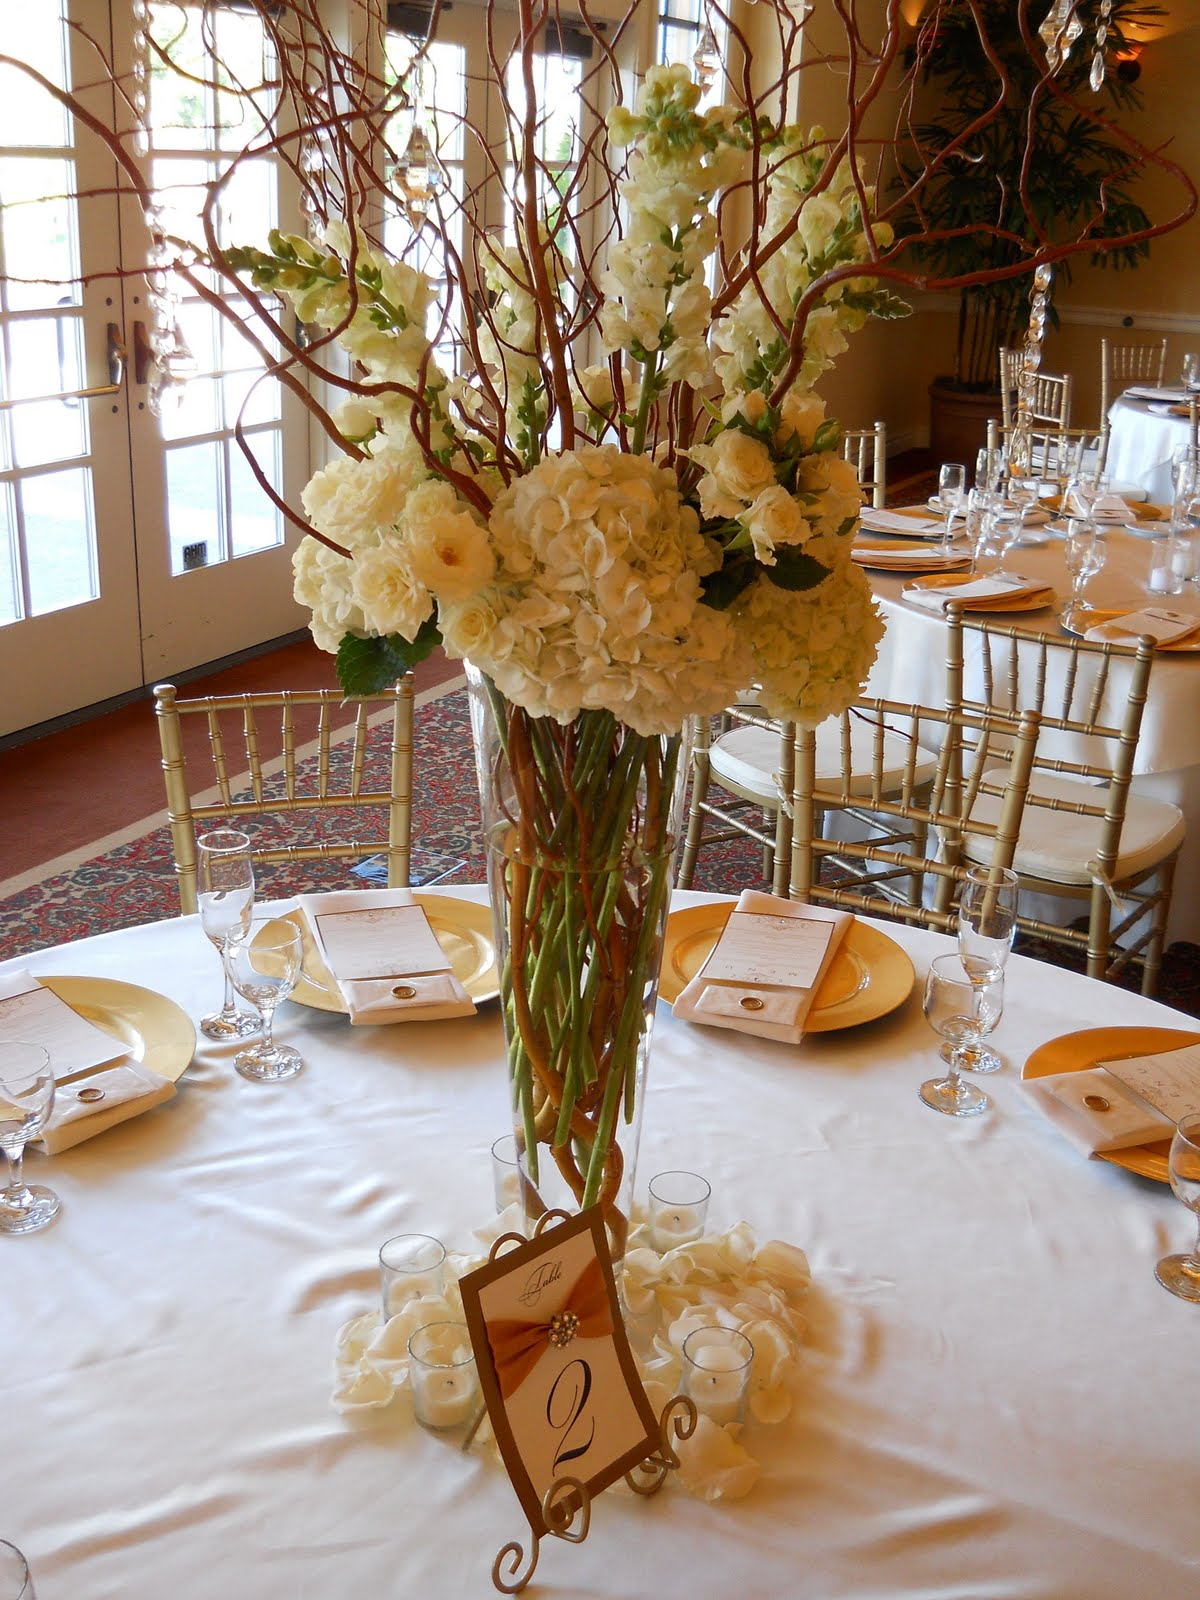 wedding centerpieces tall wedding centerpieces 69 best images about Wedding Centerpieces on Pinterest Willow branches Centerpieces and Hydrangeas